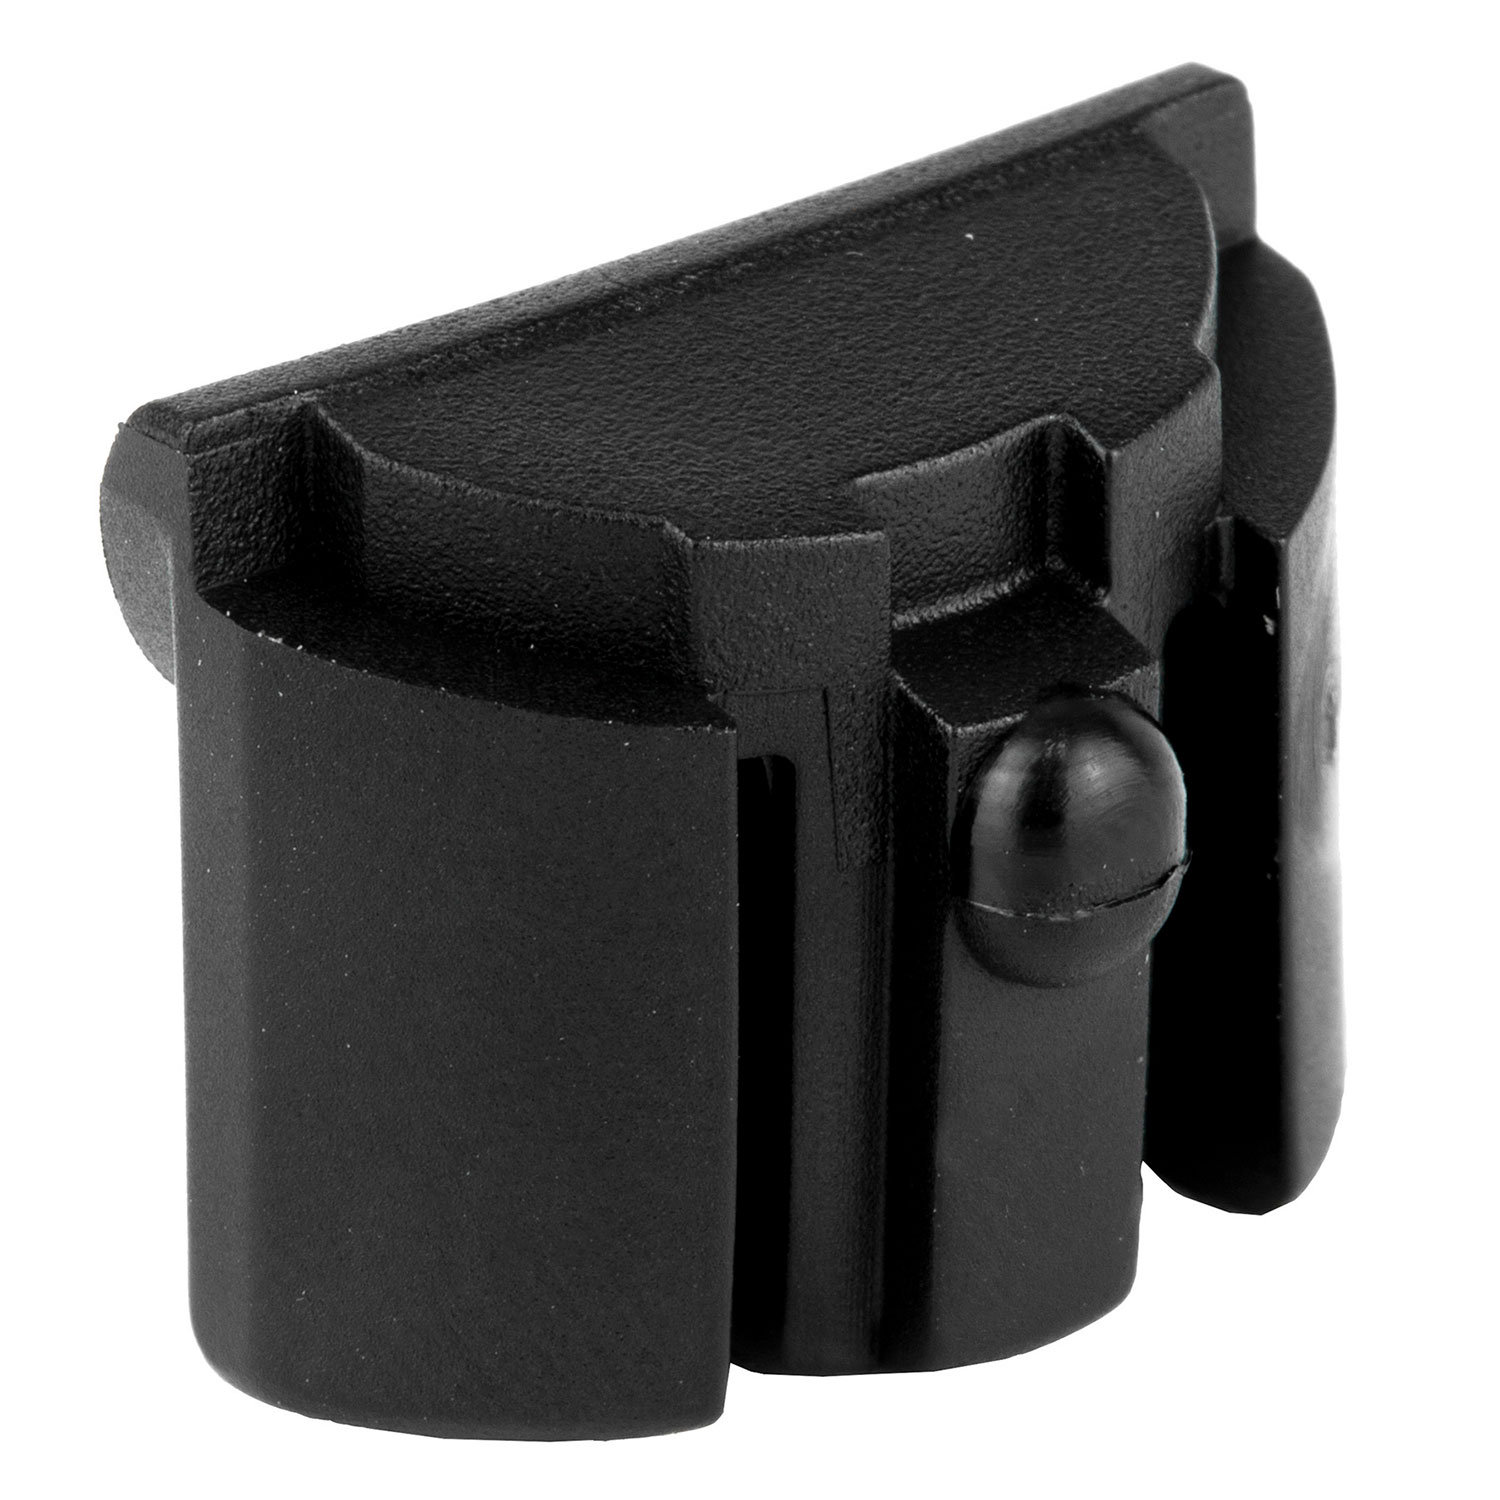 RSR Pearce Frame Insert For Glock Gen4 20/21/41